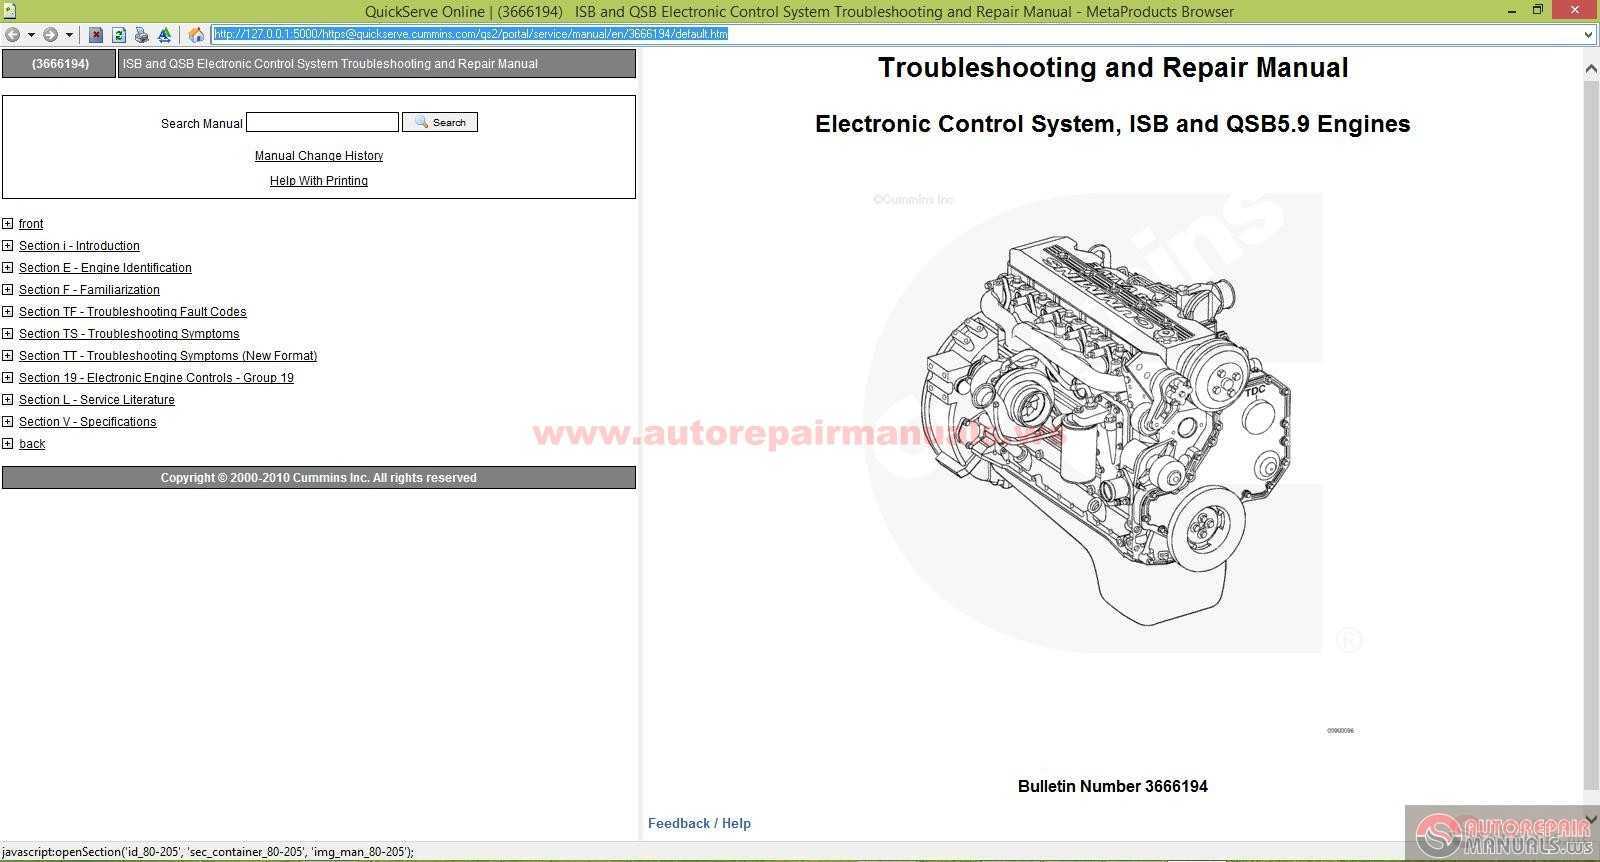 Cummins Isb And Qsb Electronic Control System